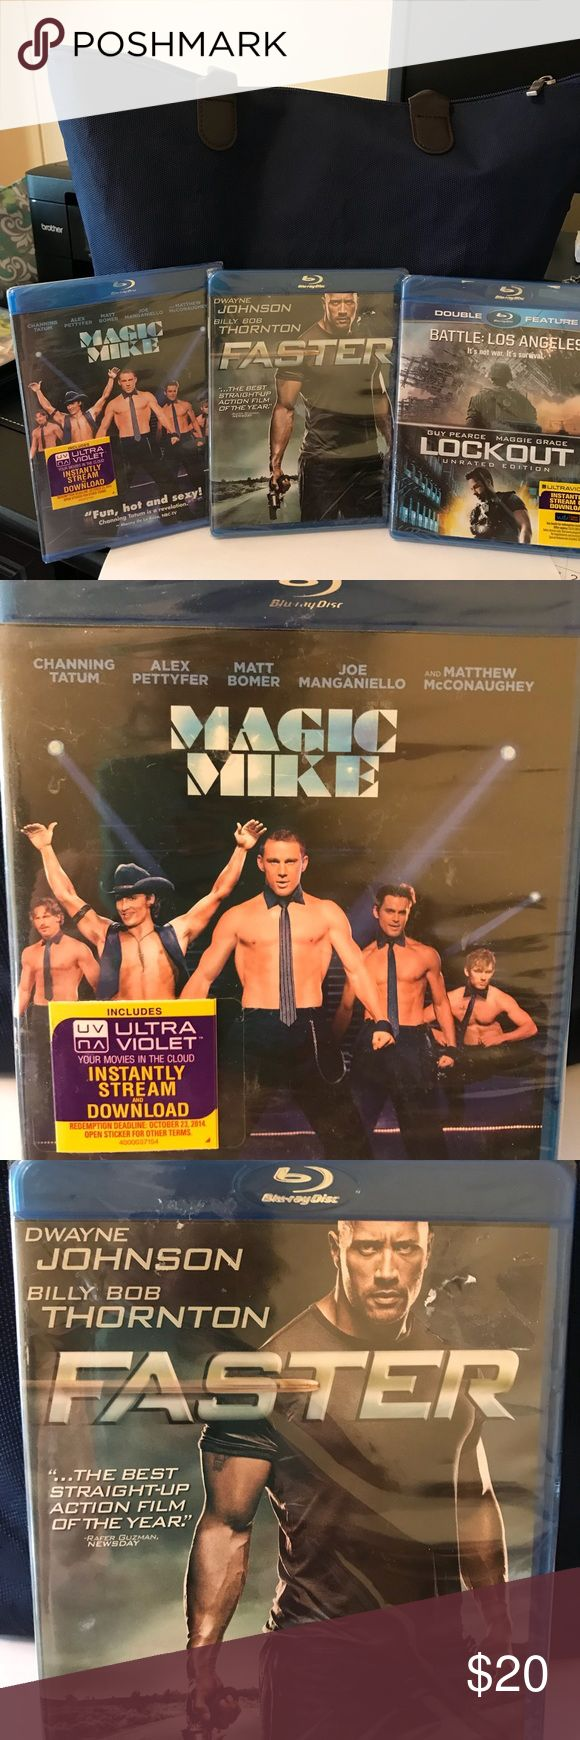 🎄3 BLU-RAY DVD'S🎄. NEW still in plastic. 🎄3 BLU-RAY DVD'S - Great Stocking Stuffers🎄 • Faster - Dwayne Johnson & Billy Bob Thornton • Magic Mike • Double Feature - Battle Los Angeles and Lookout Other